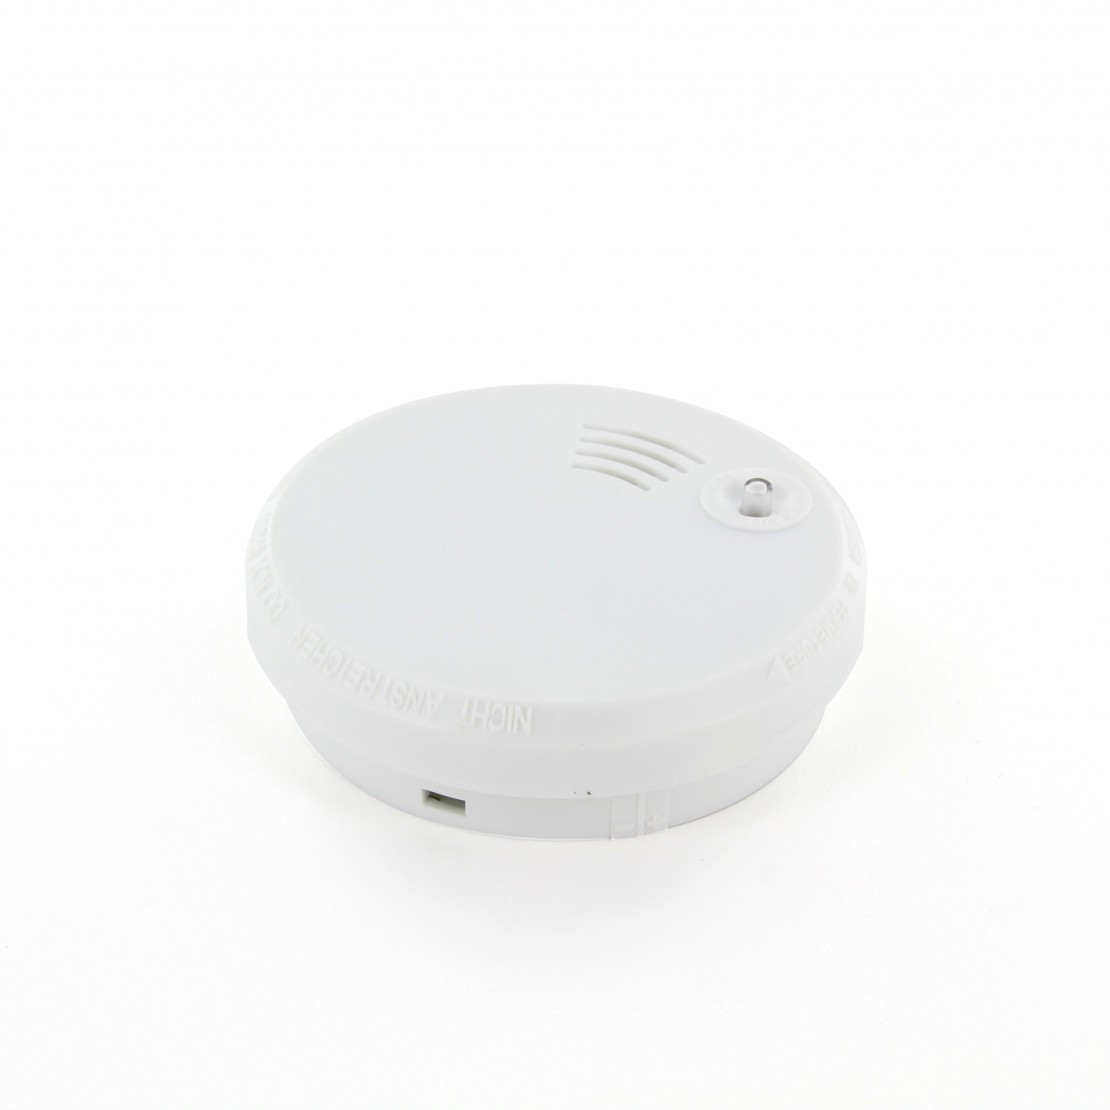 Optical smoke alarm with lithium battery - 11 years